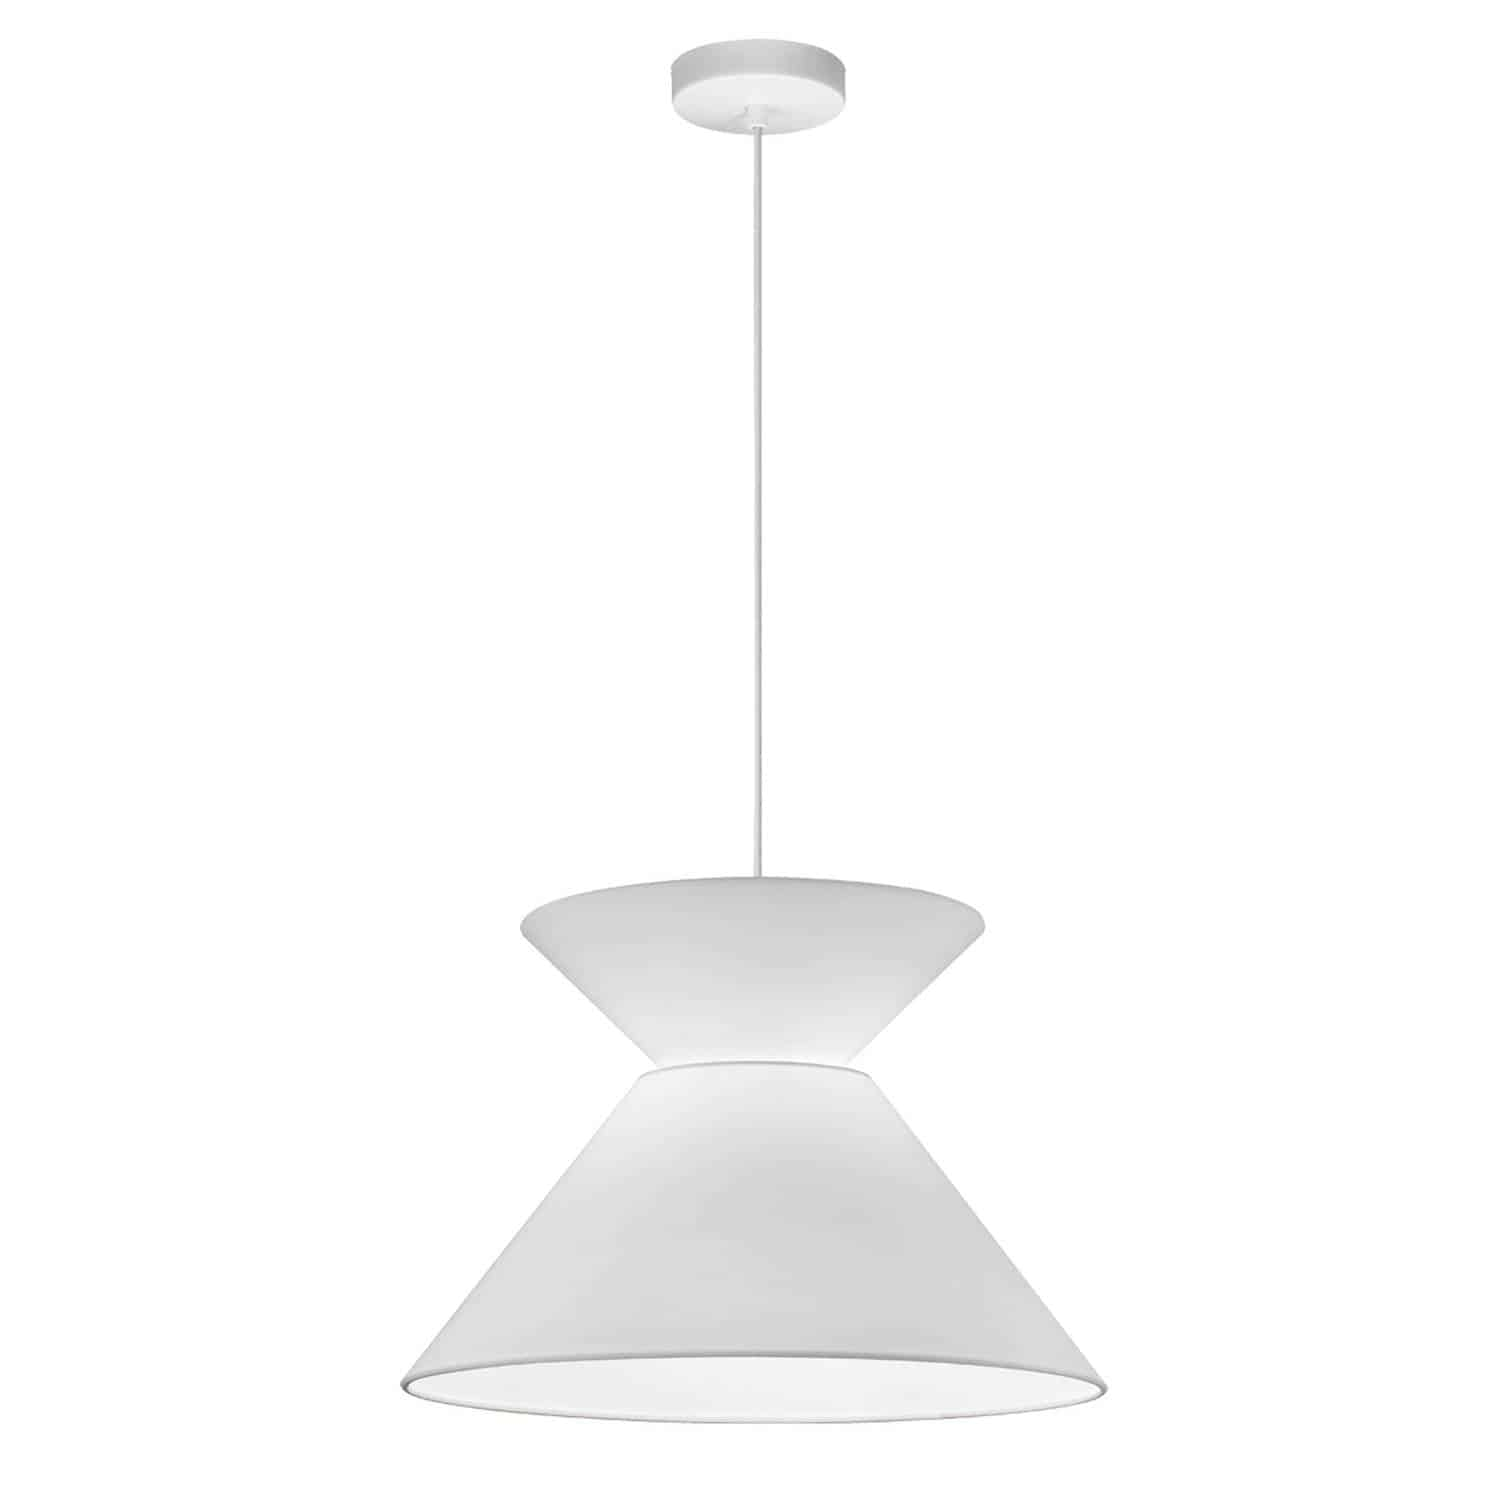 1 Light Patricia Pendant, White with White Shade